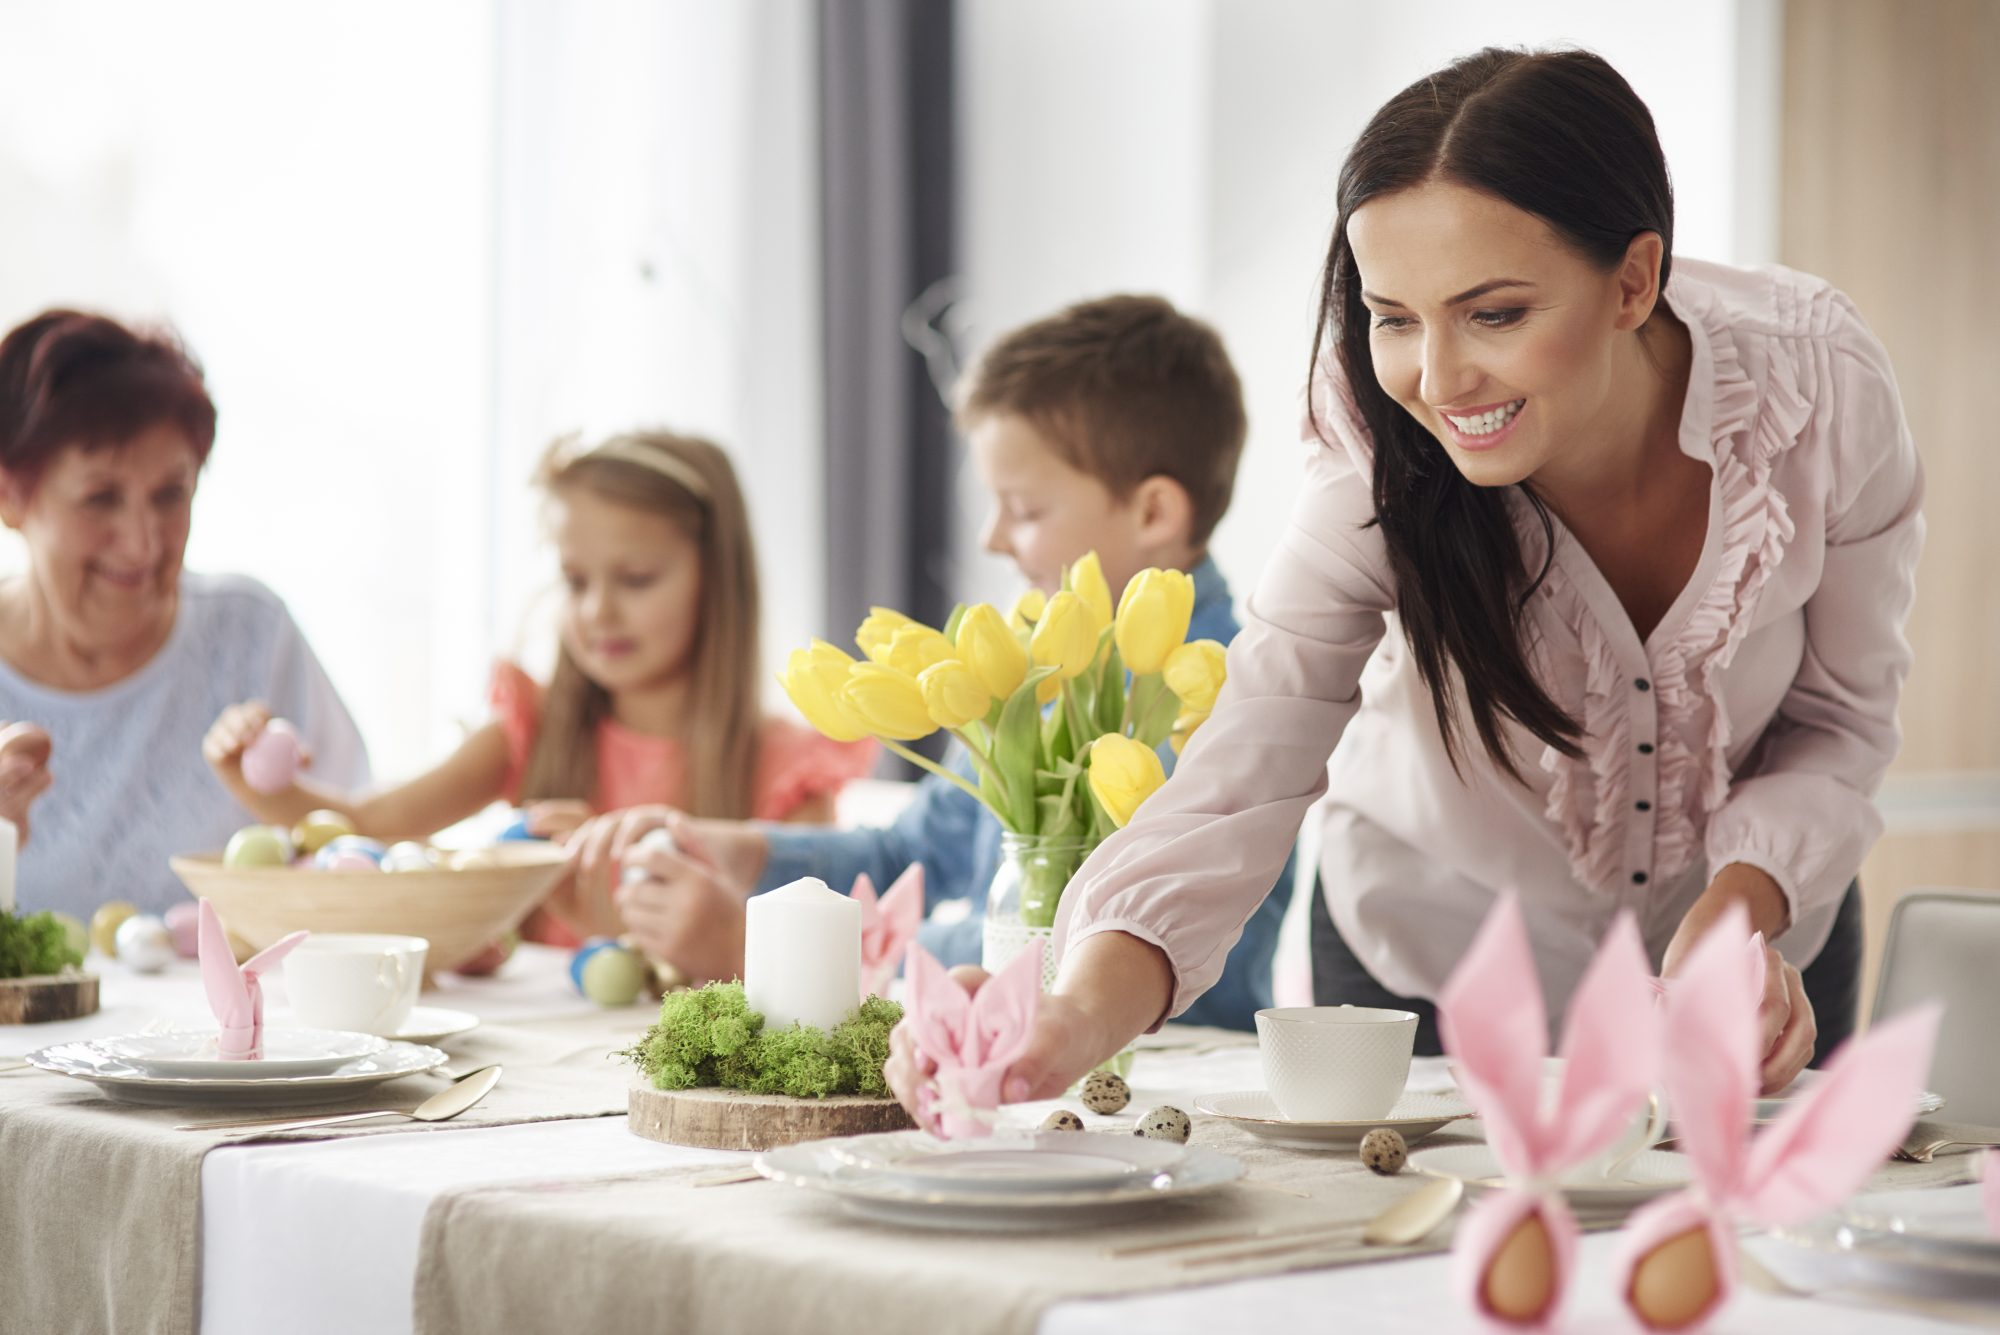 Woman Setting Easter Table